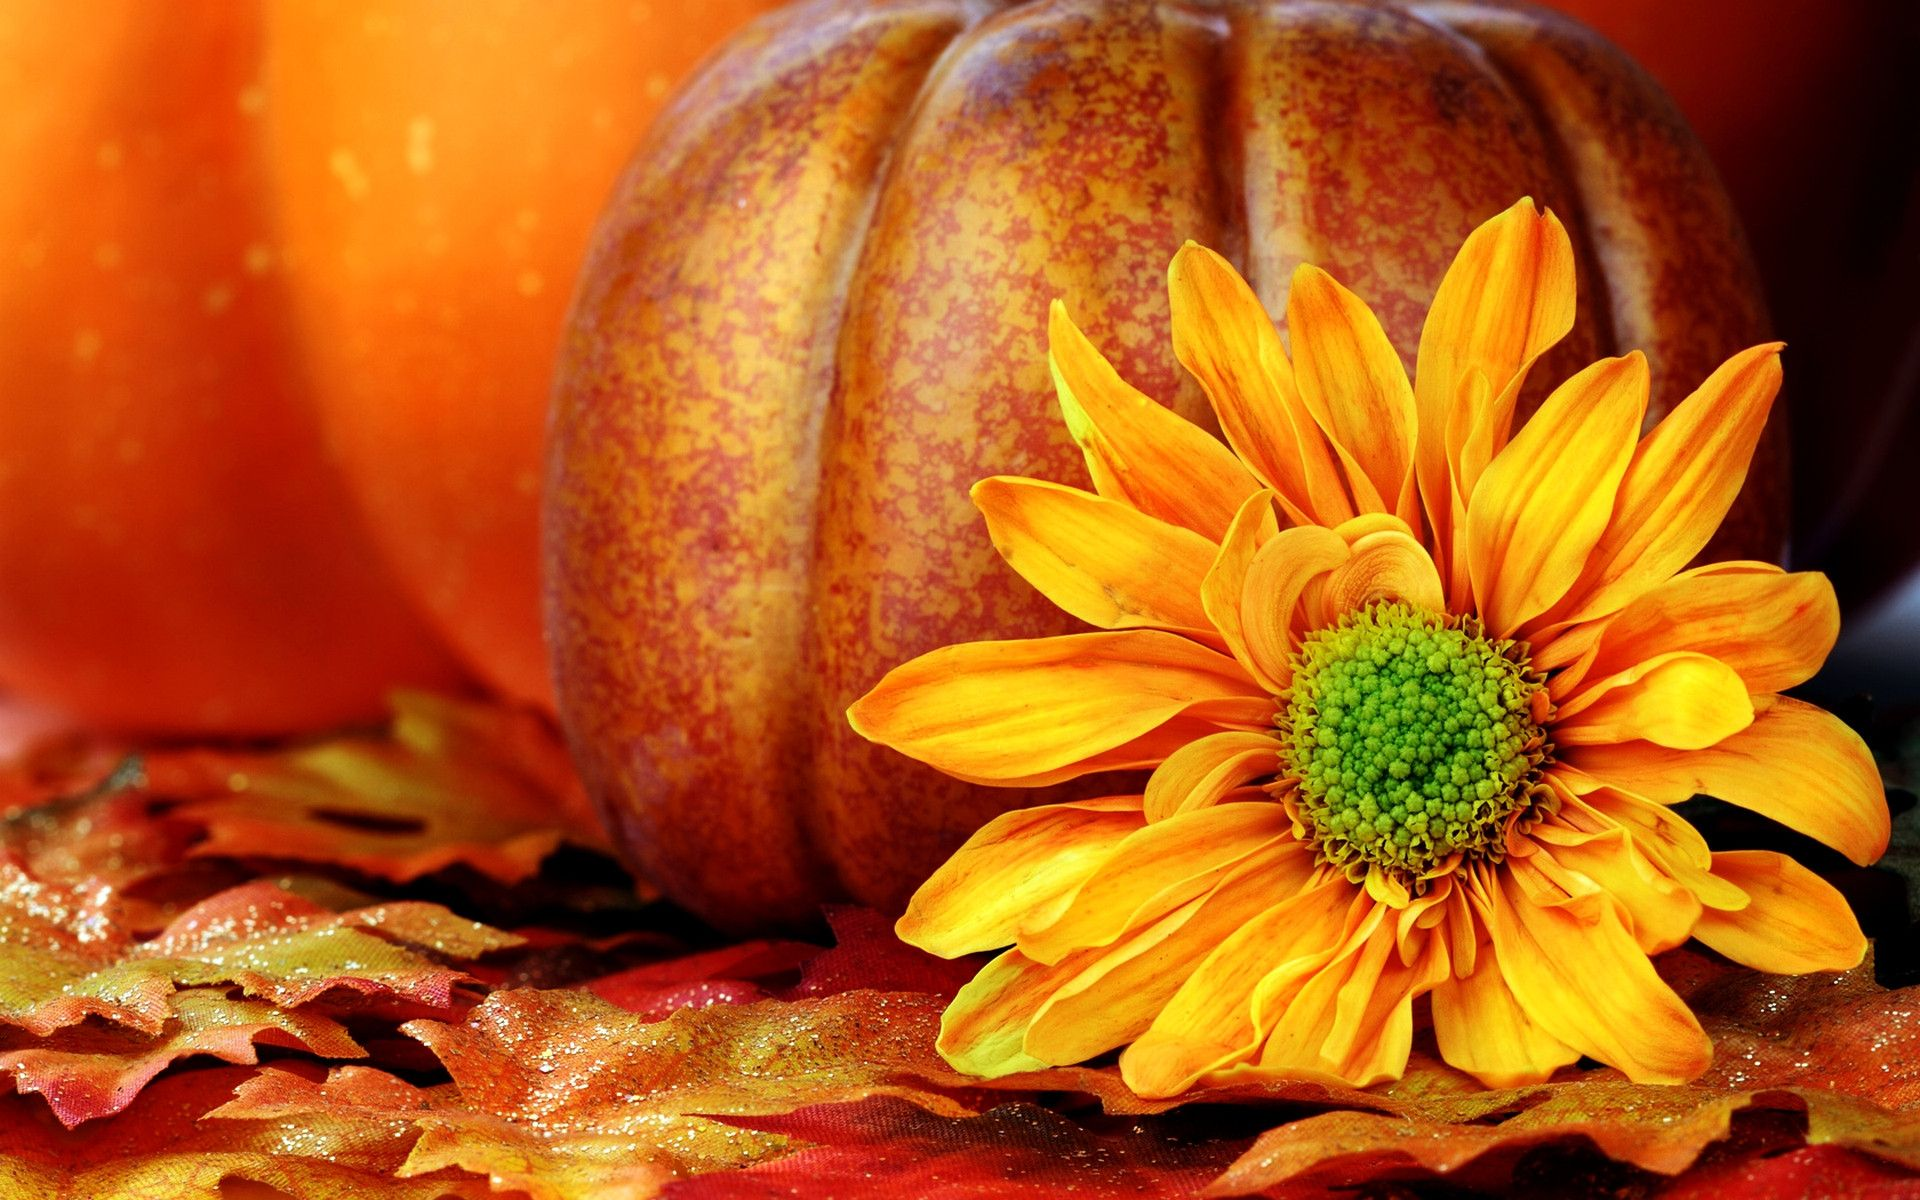 Fall Wallpapers With Pumpkins CX4J5UPjpg   Picseriocom 1920x1200